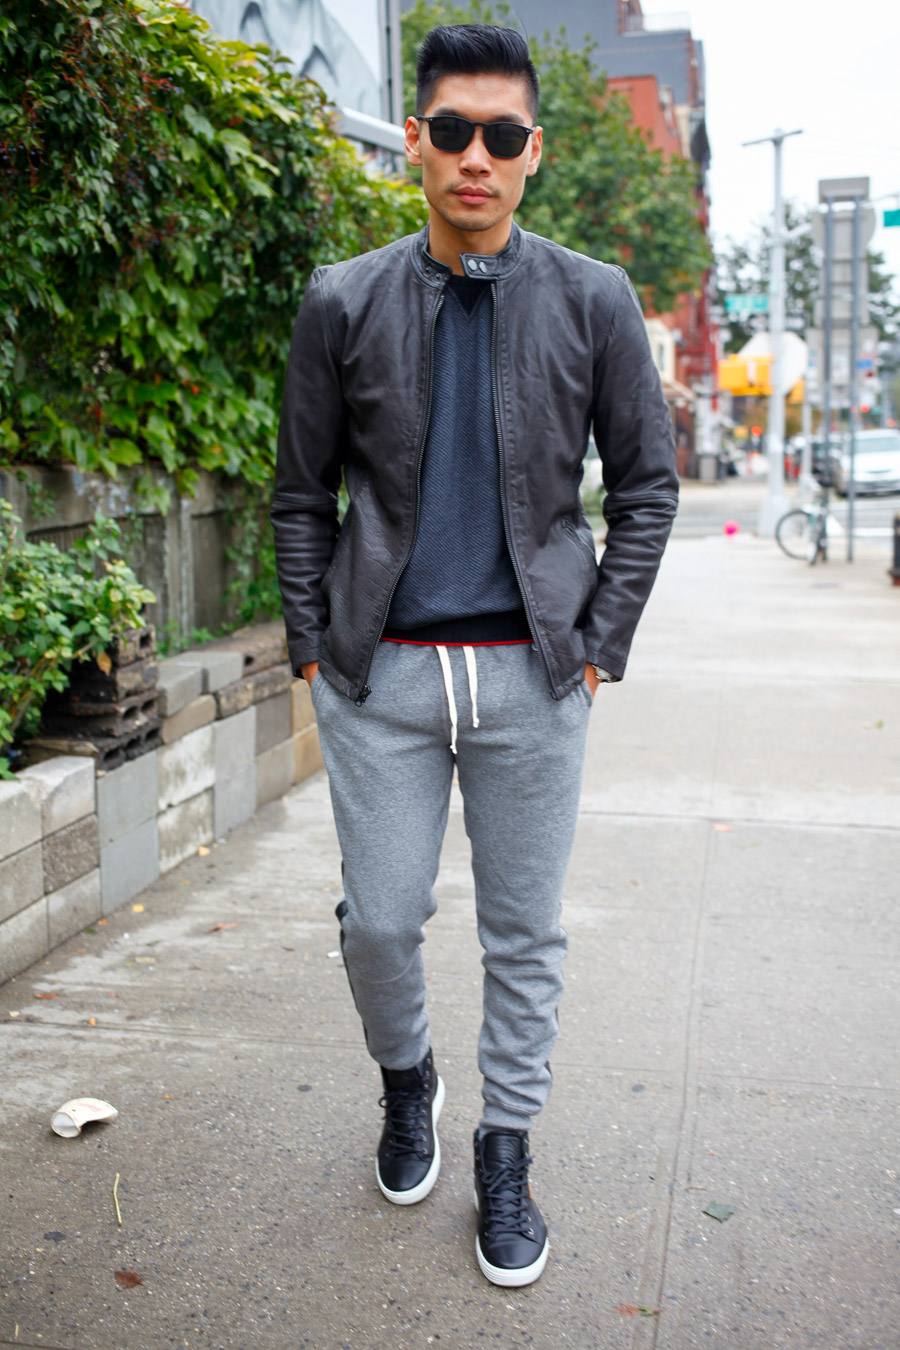 Stylish Sweats, Winter, Todd Snyder NY, Ace Rivington, Ecco, Timex, menswear